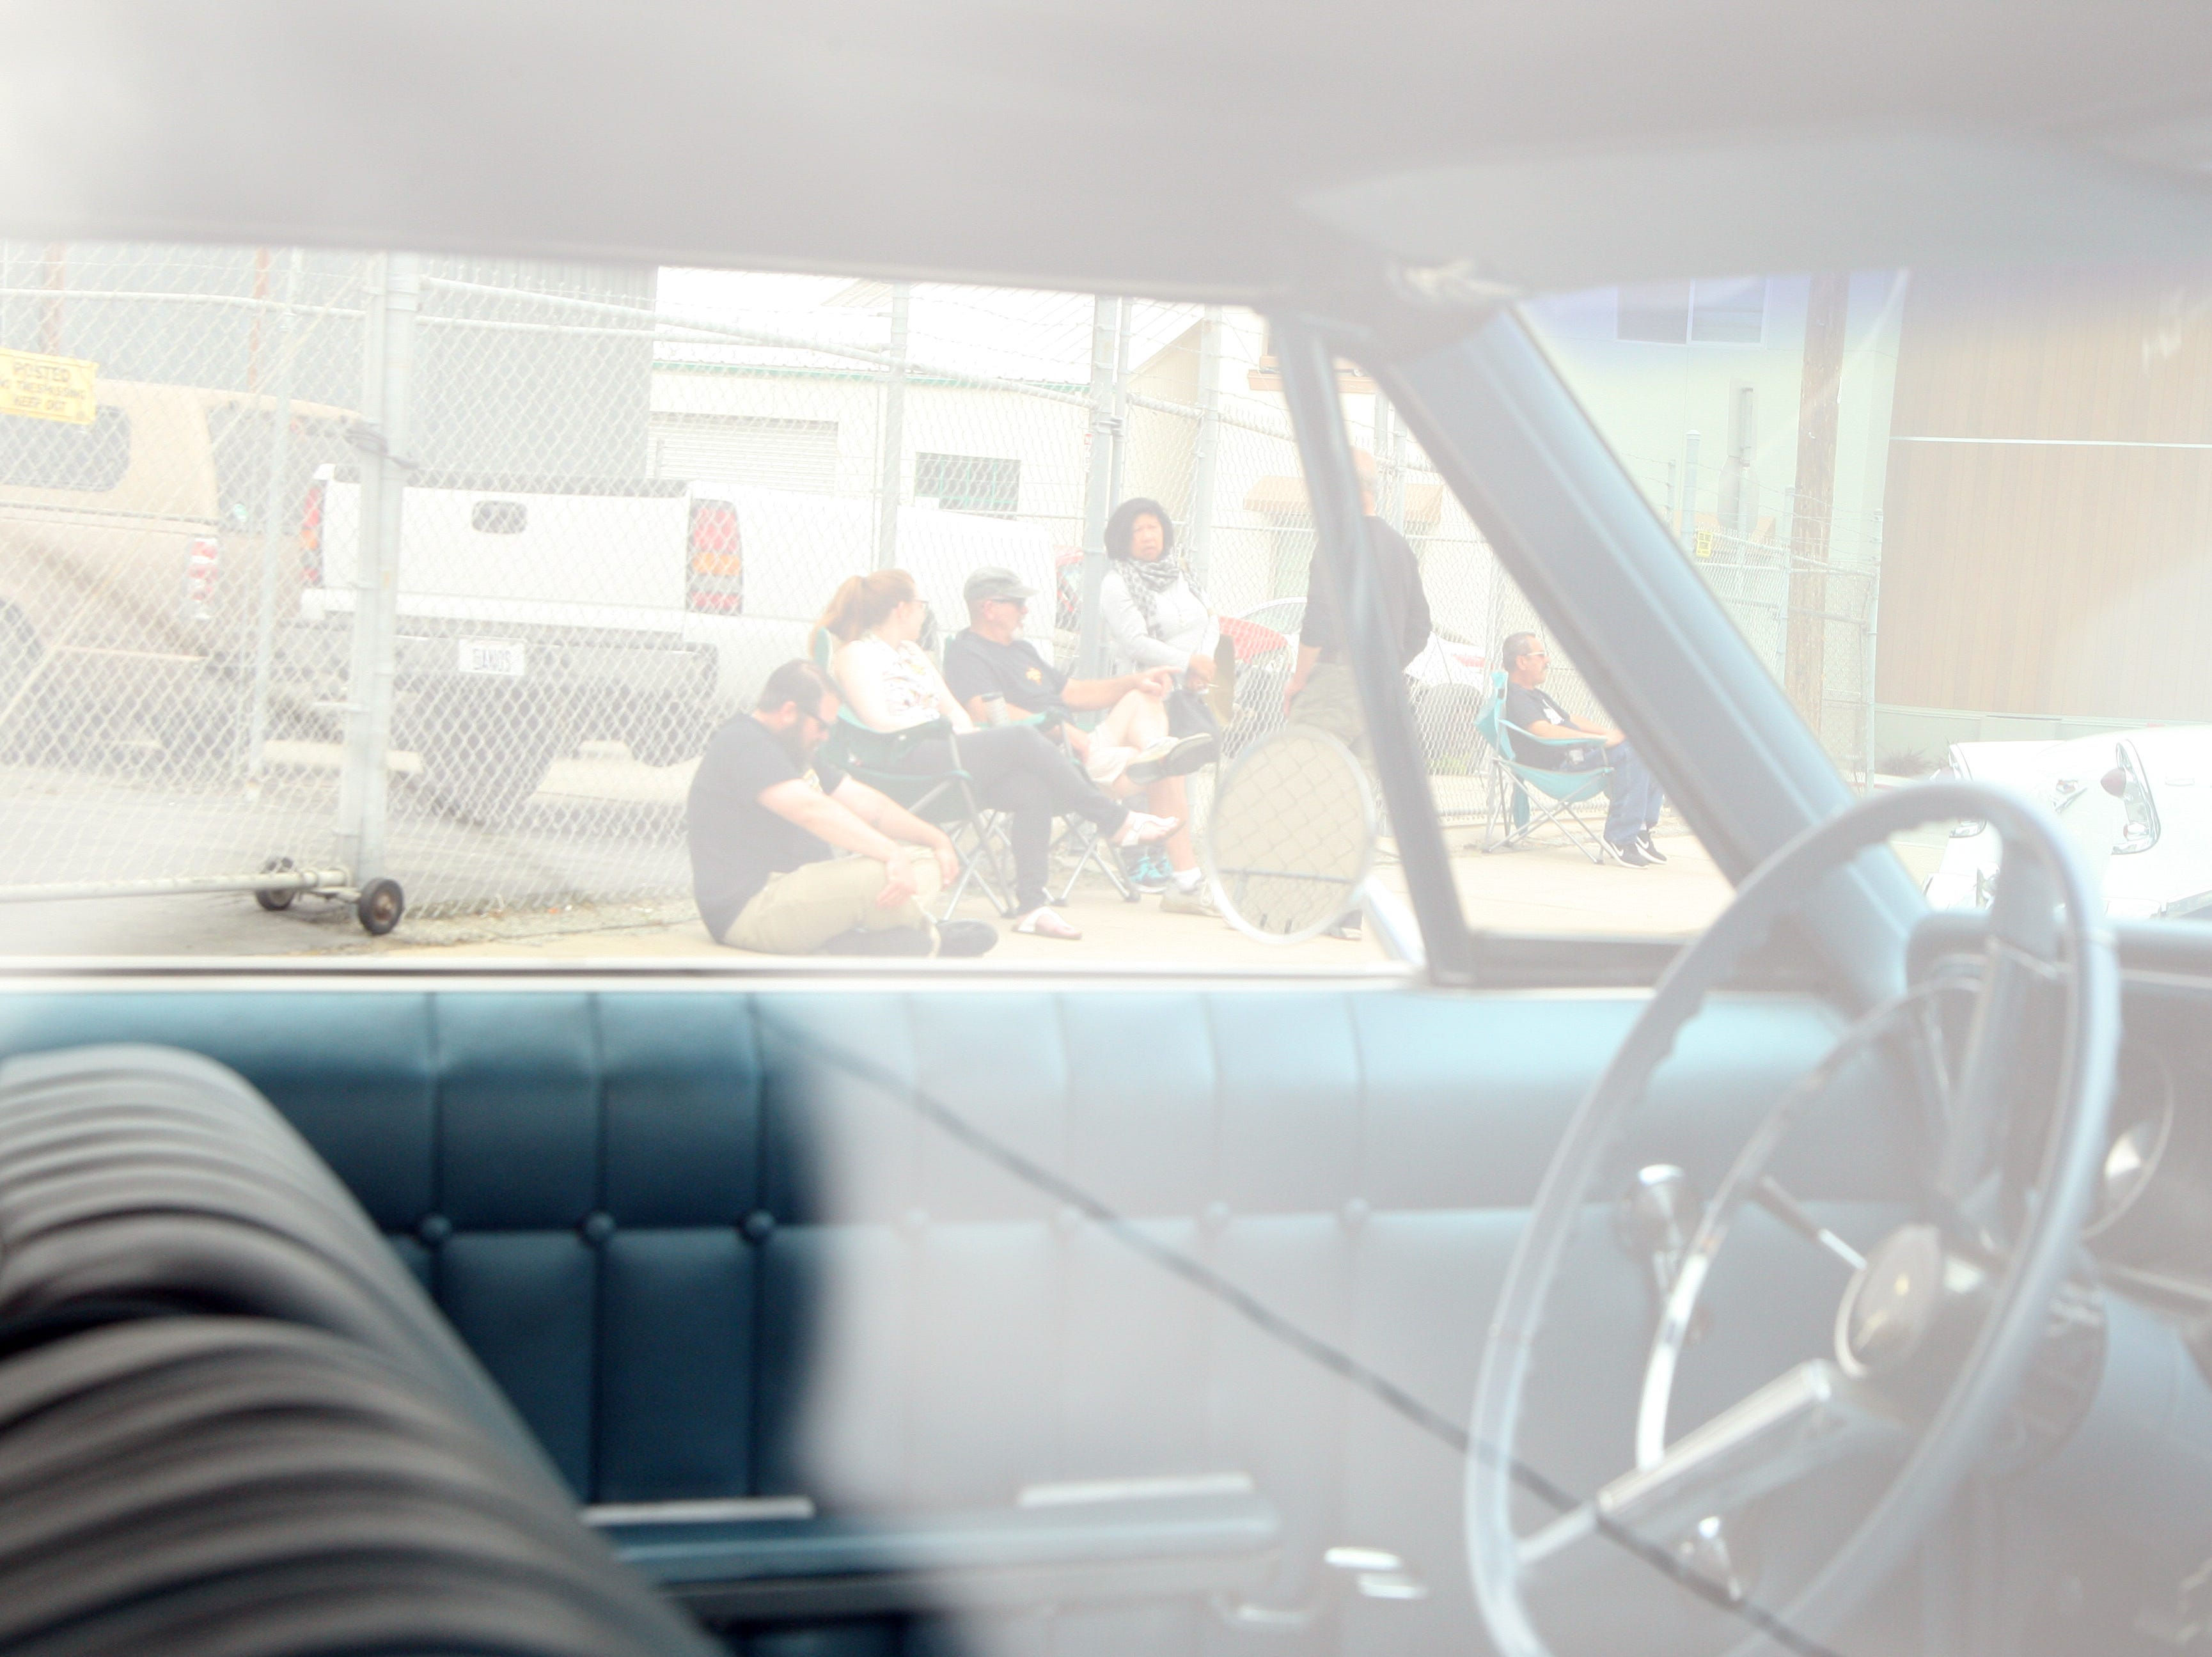 A group of car owners perches on the sidewalk, ready to talk to anyone interested in their classic cars. April 27, 2019.